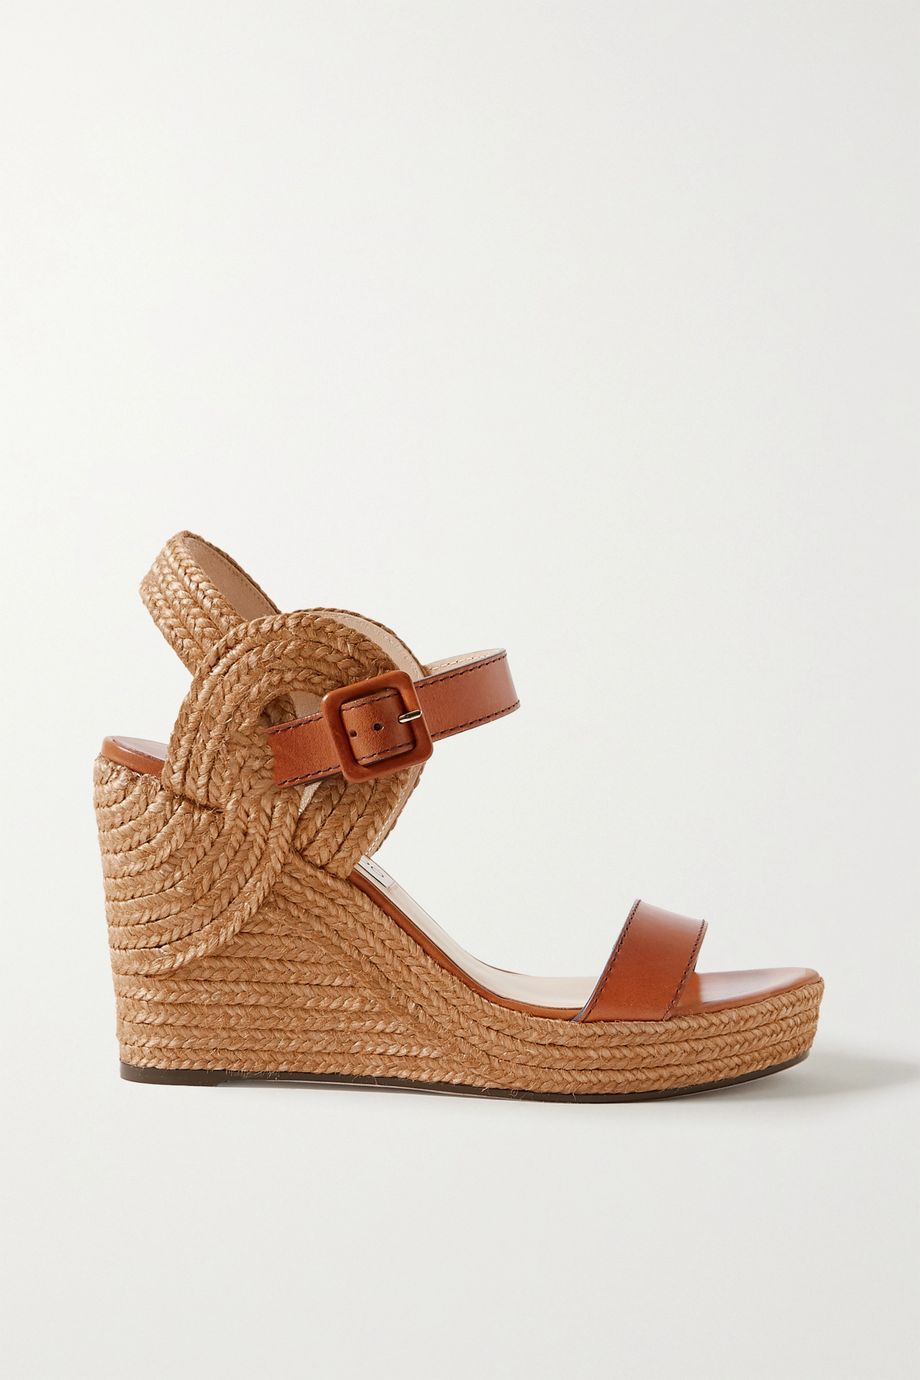 Jimmy Choo Delphi 100 leather and jute espadrille wedge sandals